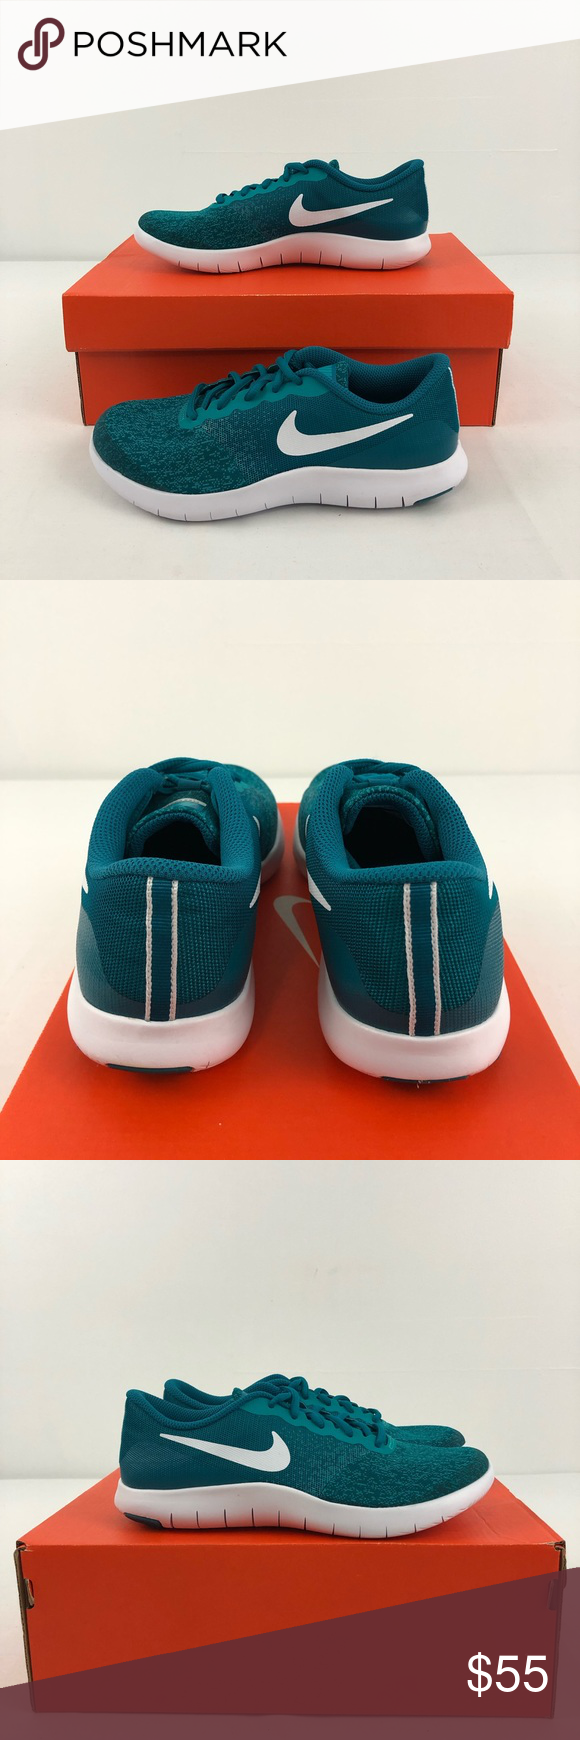 da02c756a664 Nike Flex Contact GS Nike Flex Contact GS Kid s Size 5.5 Style  917937 400  Color  Blustery White-Turbo Green New in box (display model) Please feel  free to ...